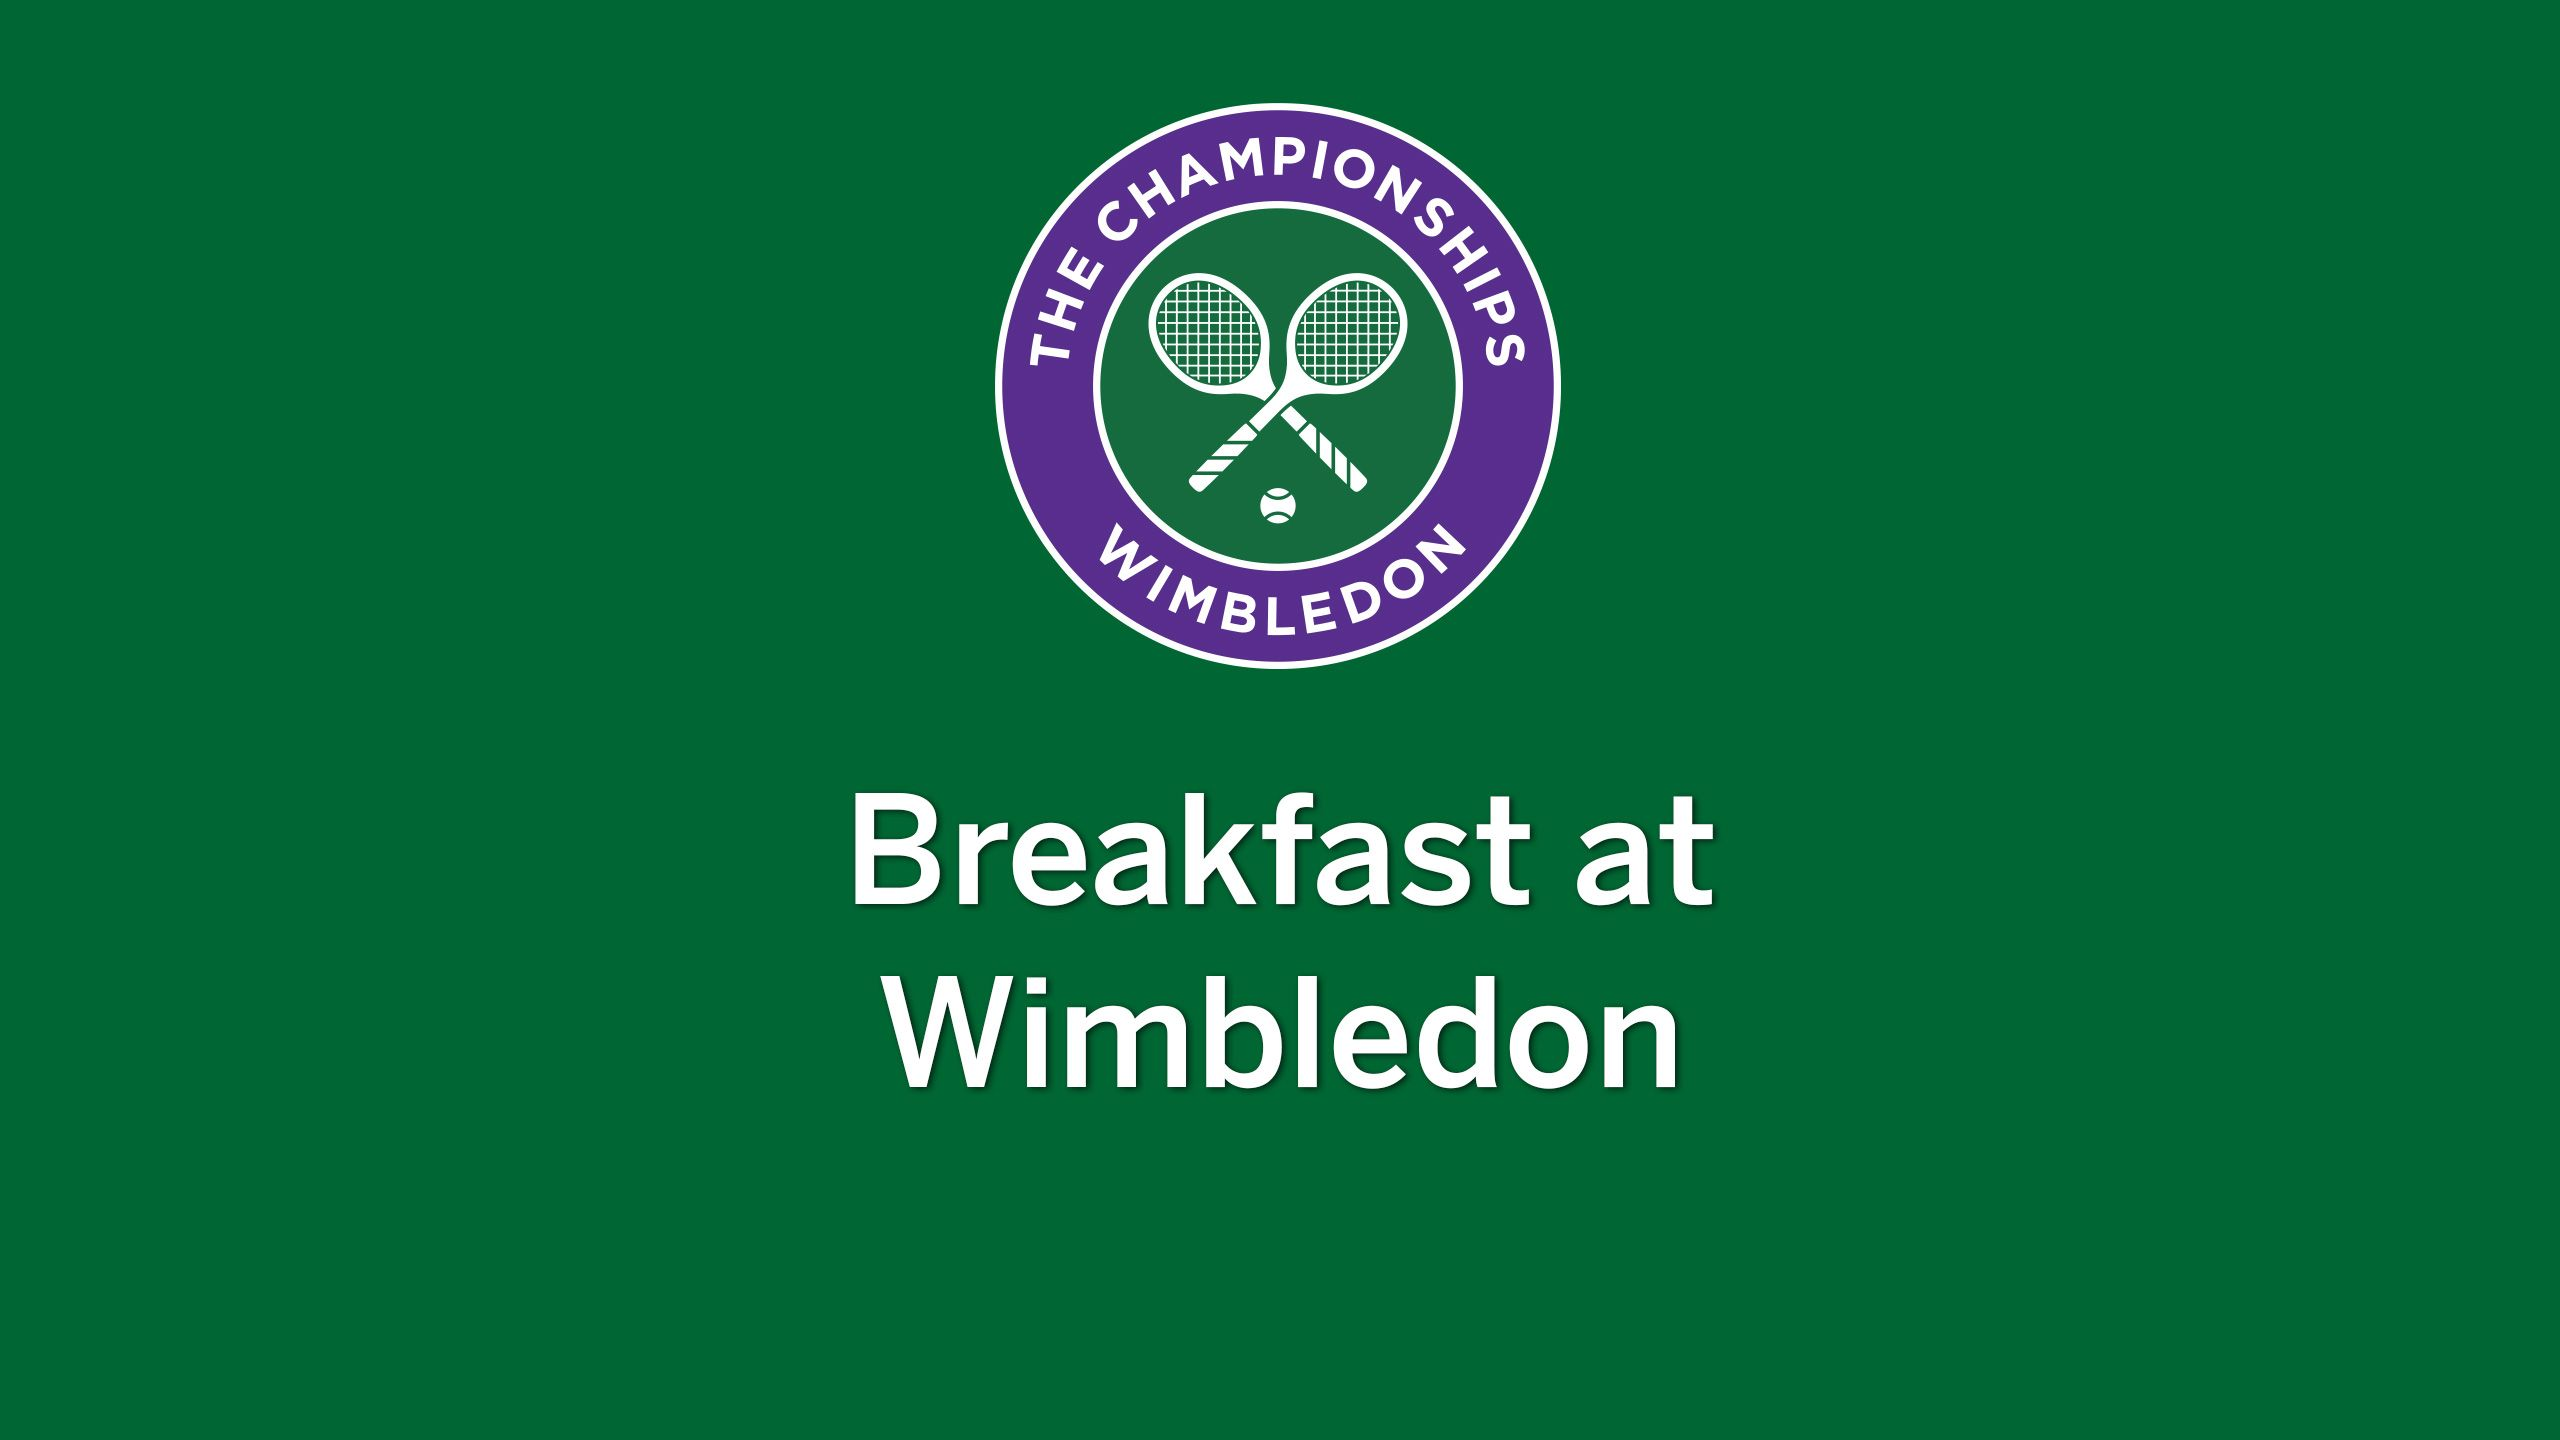 Breakfast at Wimbledon, presented by Panera Bread